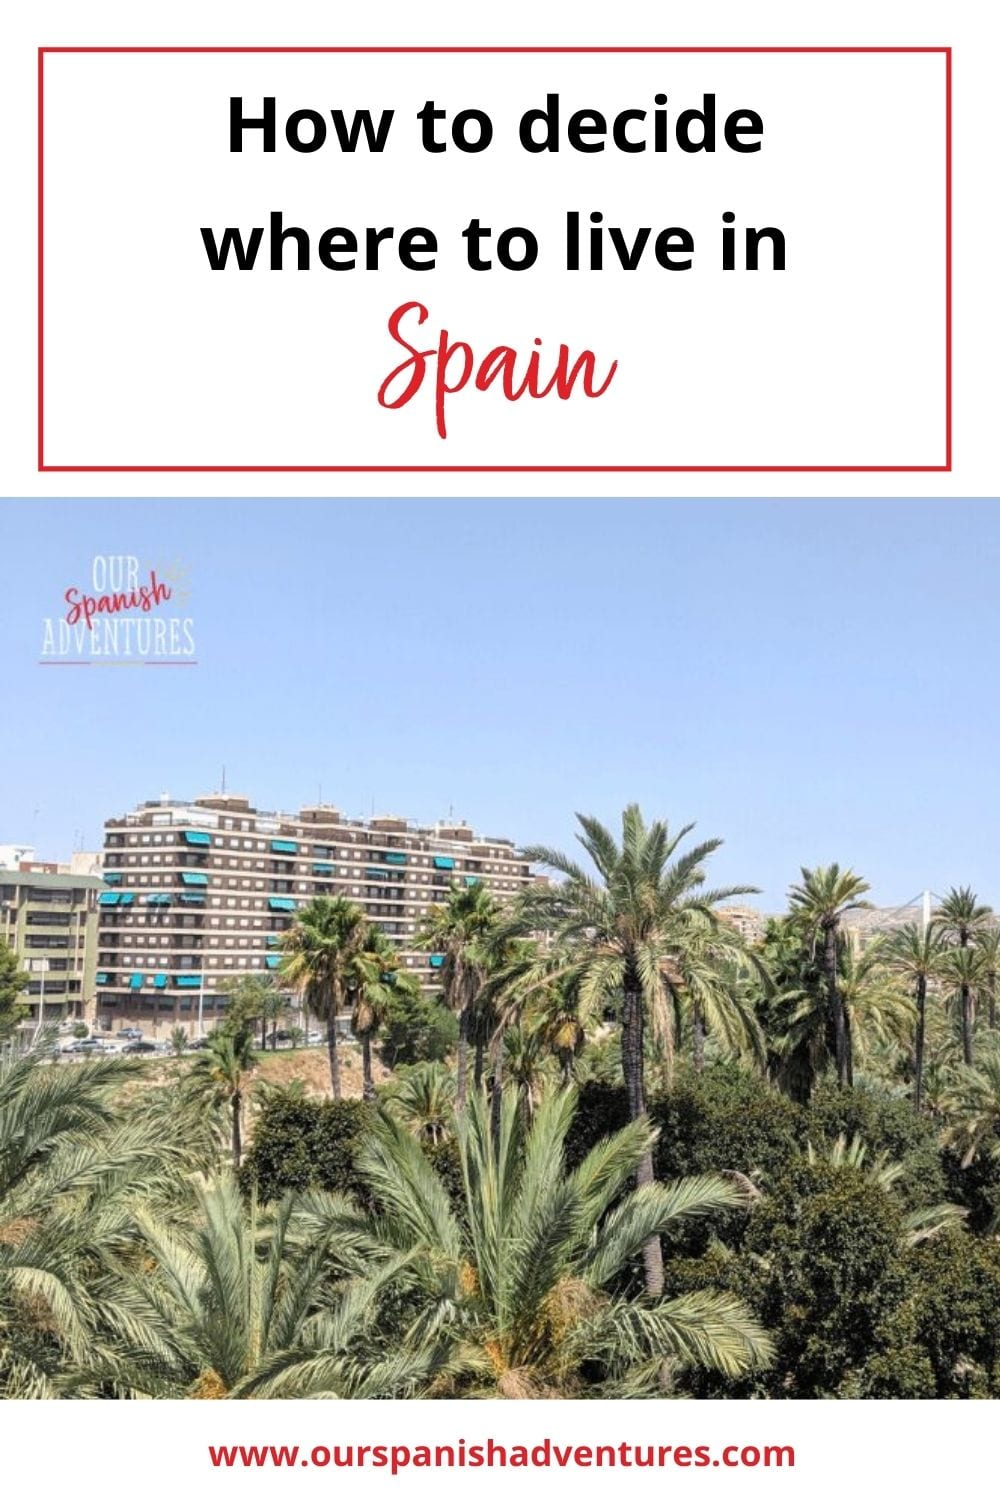 How to decide where to live in Spain | Our Spanish Adventures